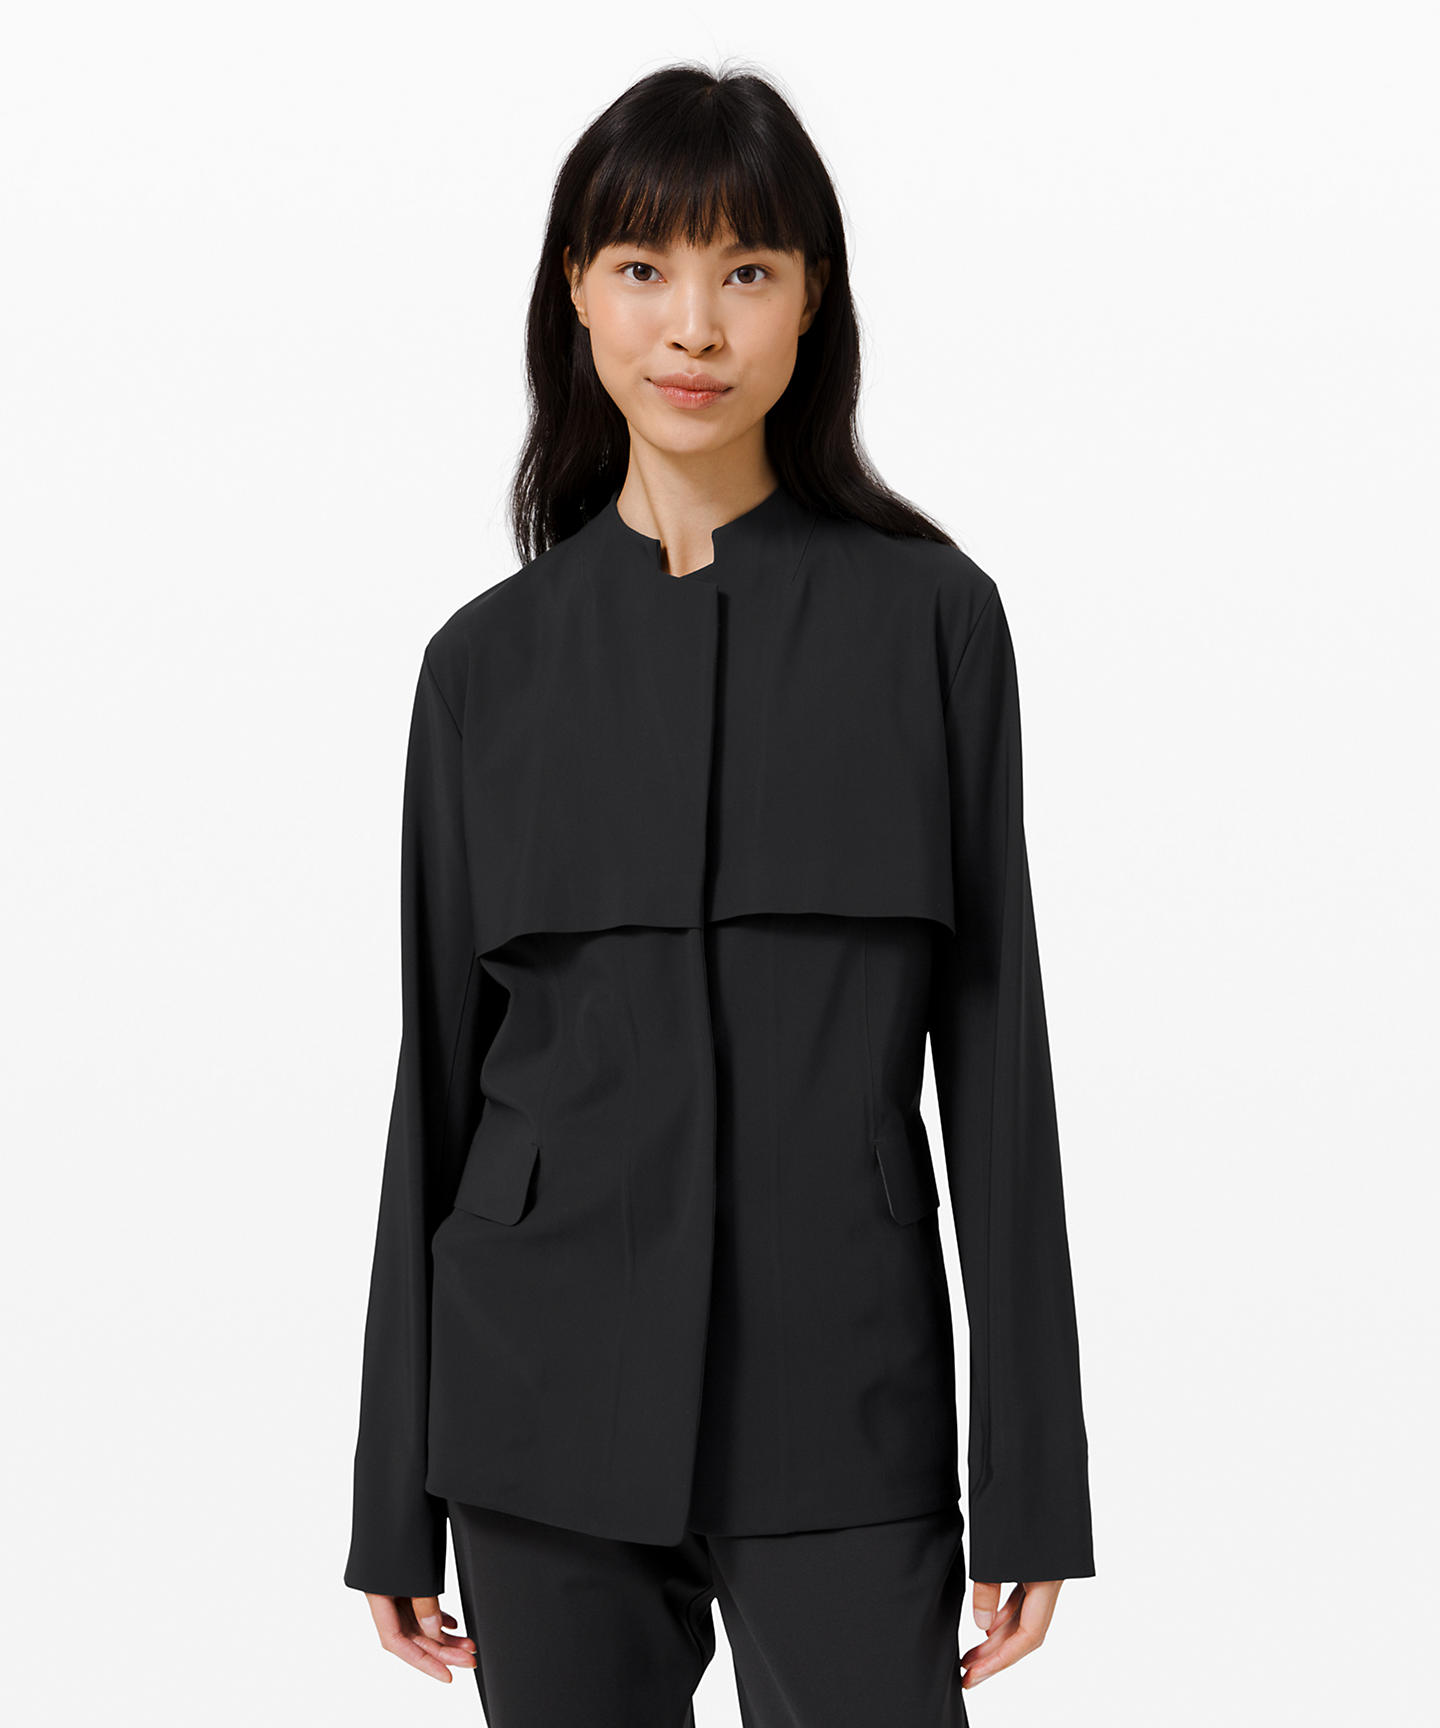 Between Places Blazer, New At Lululemon Cute Work From Home Gear